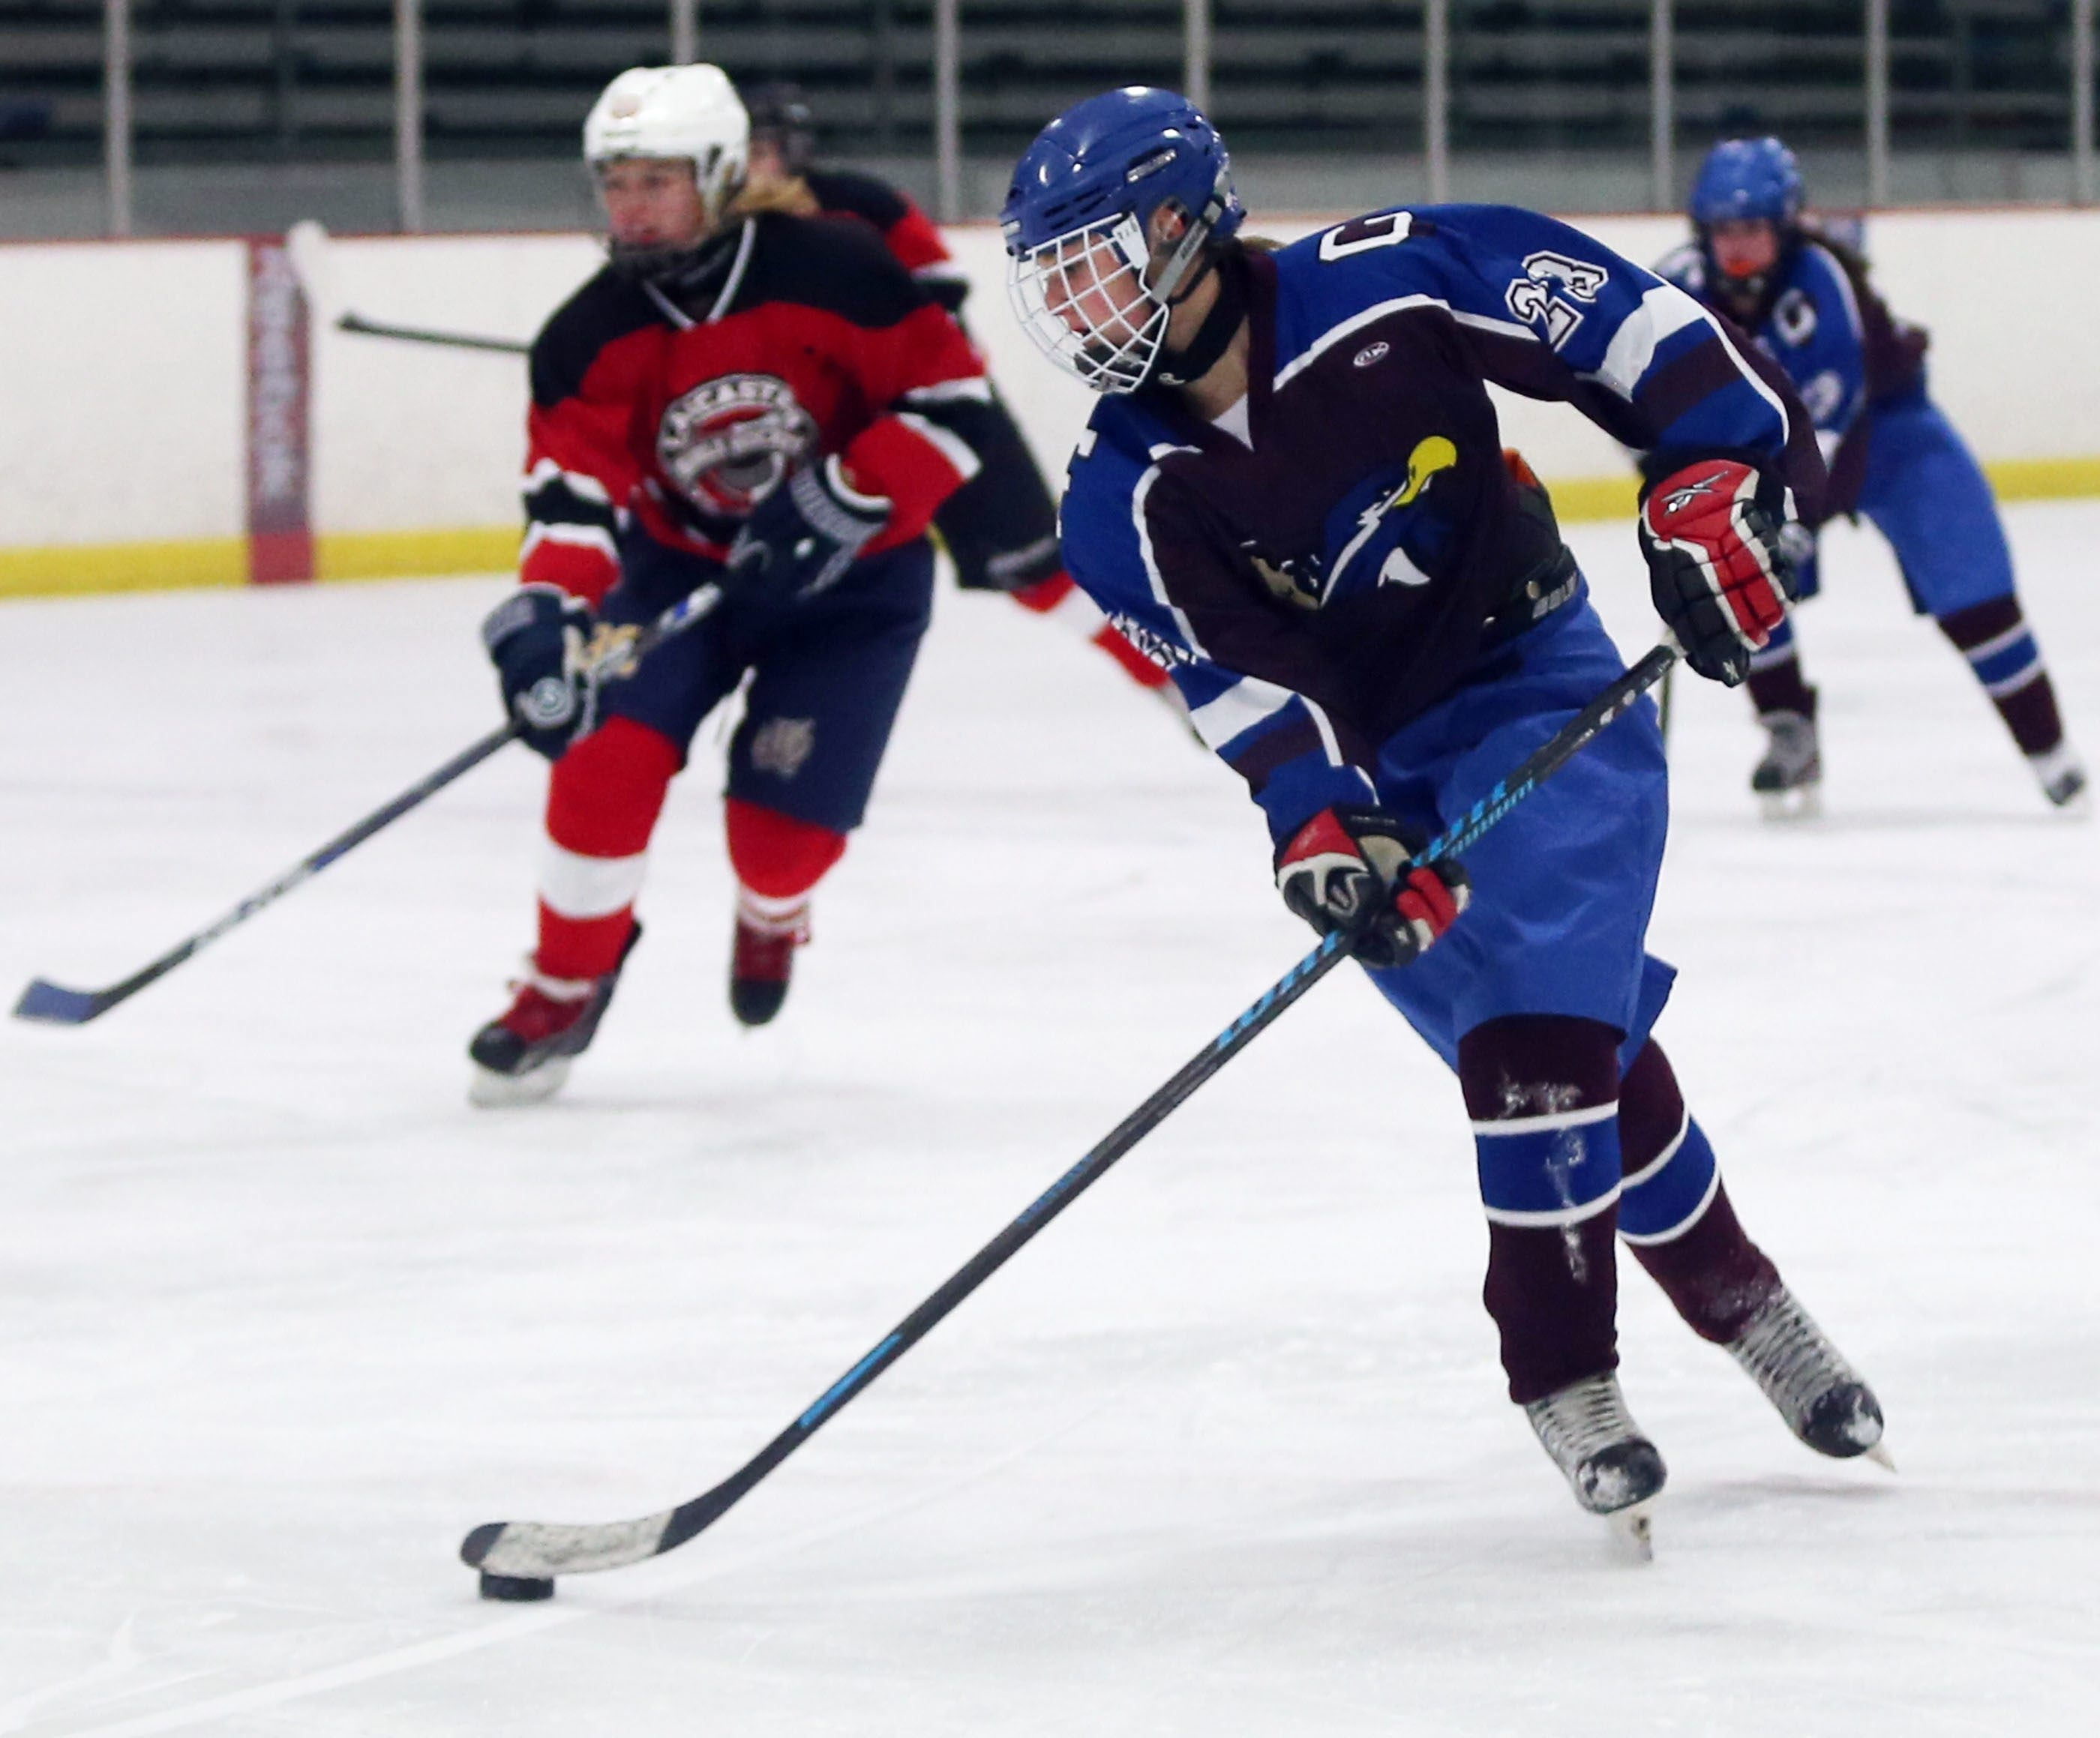 Orchard Park/Frontier's Haley Tatar scores a goal in a 6-0 triumph over Lancaster/Iroquois at Holiday Twin Rink  in Depew.